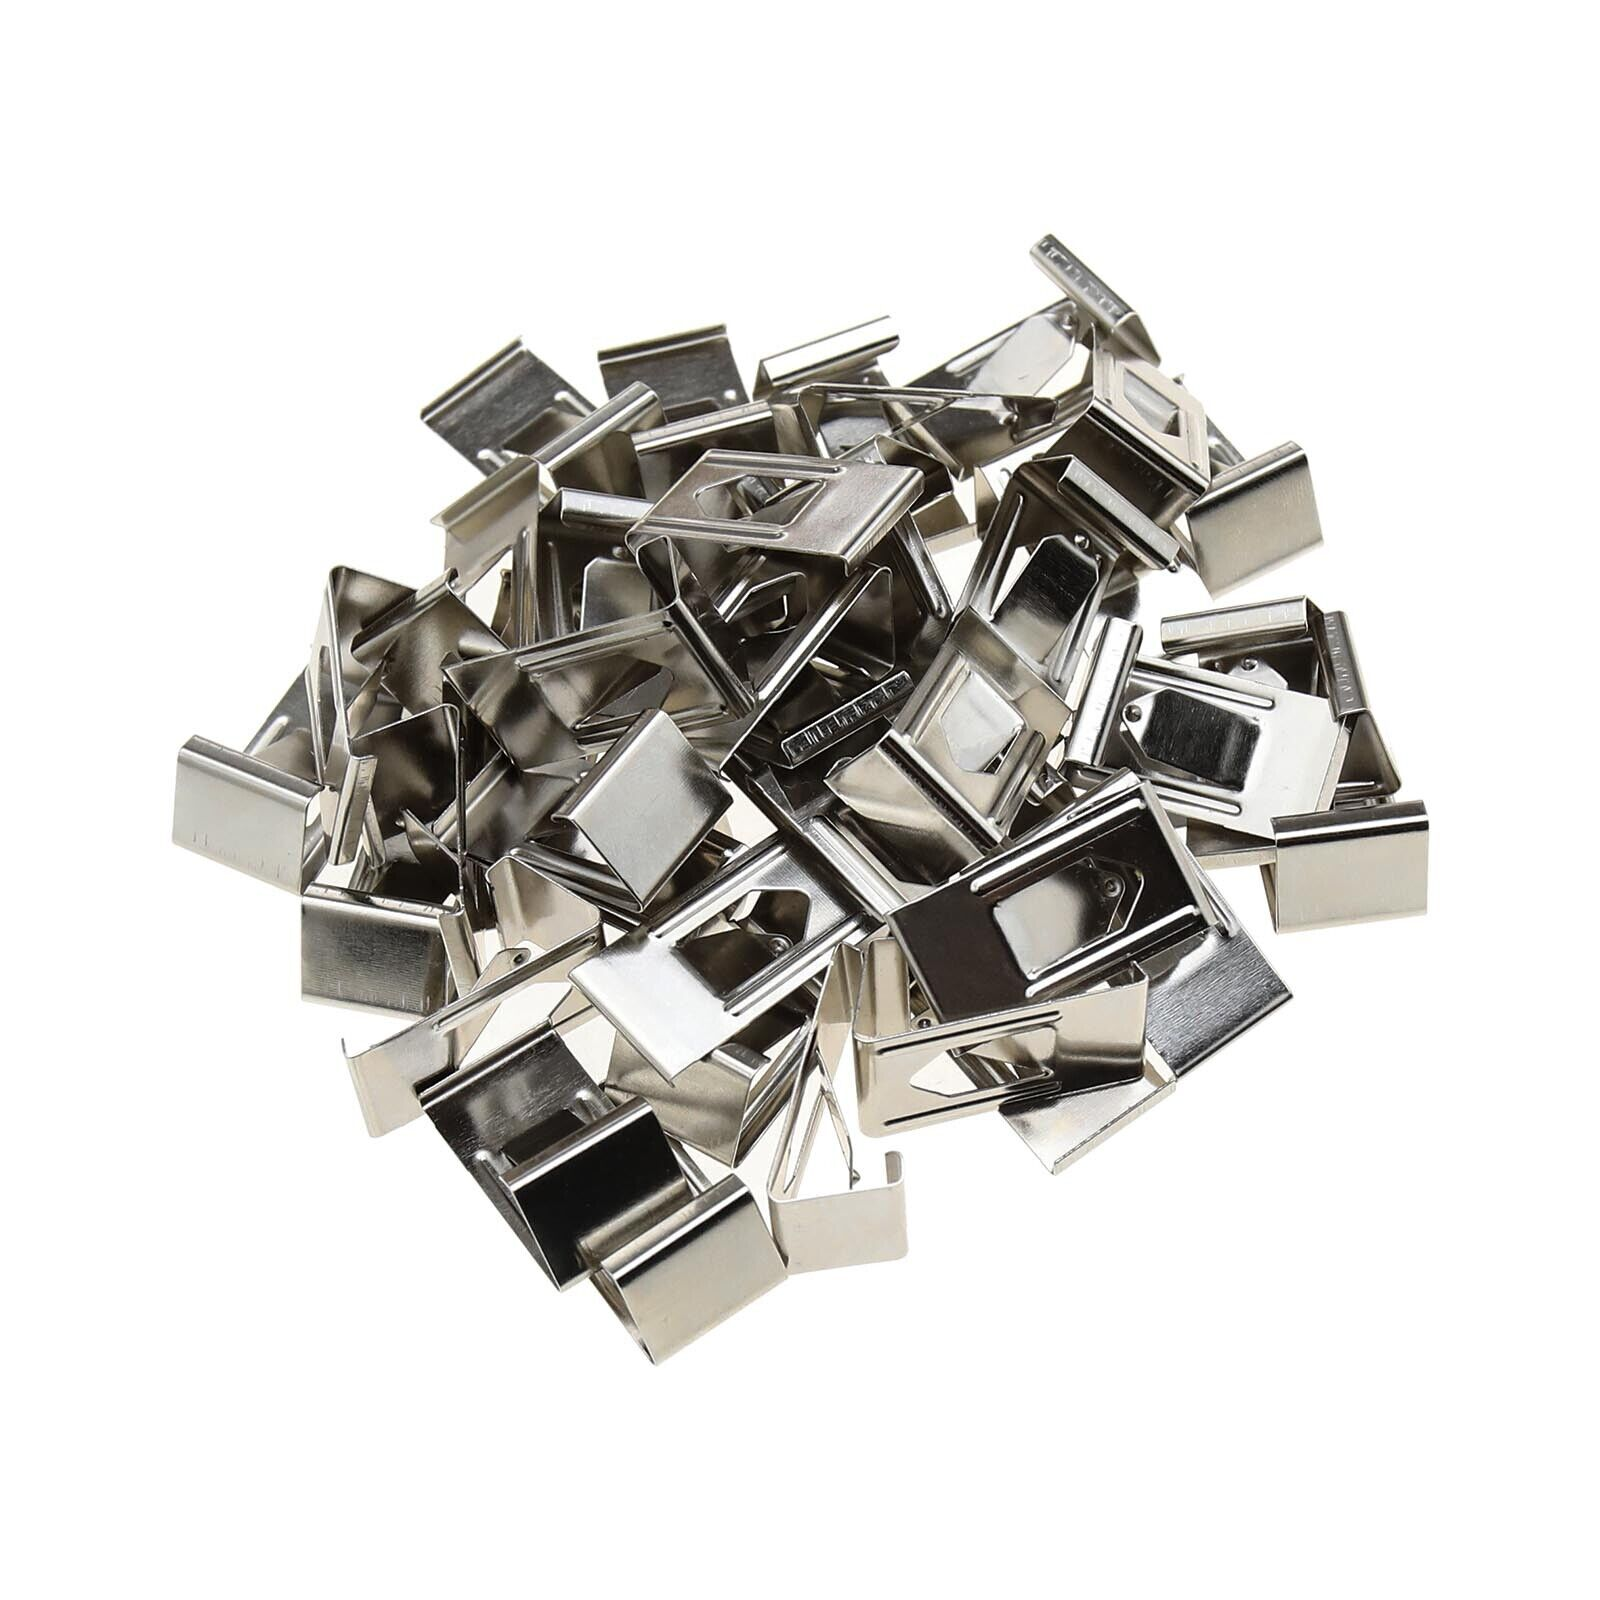 50Pcs/100Pcs Silver Spring Turn Clips Holders for 3D Printer Heated Bed Fixation